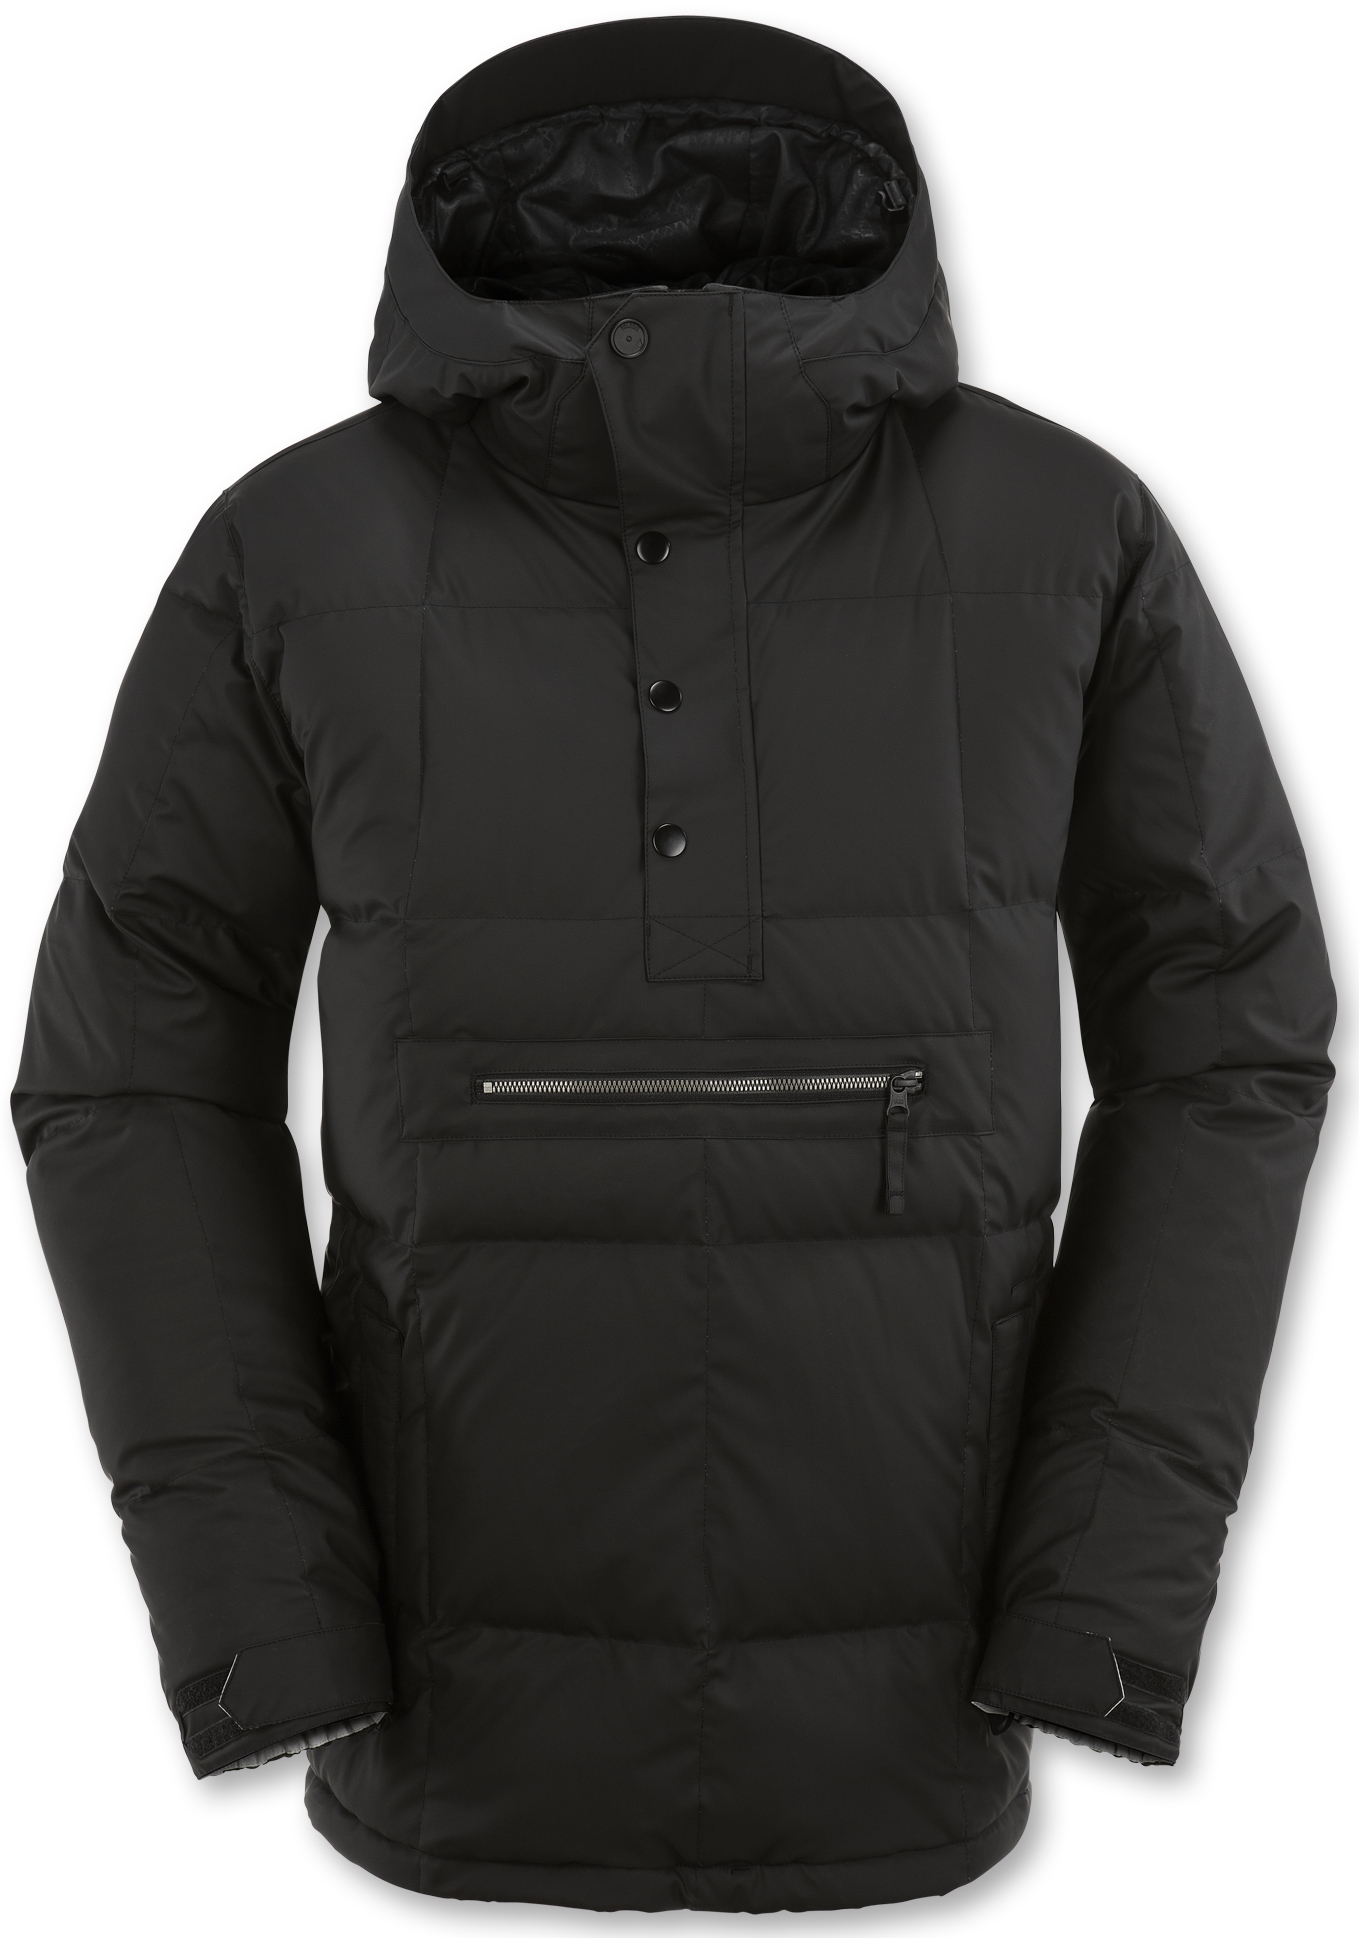 Volcom Denver Down Jacket, $280